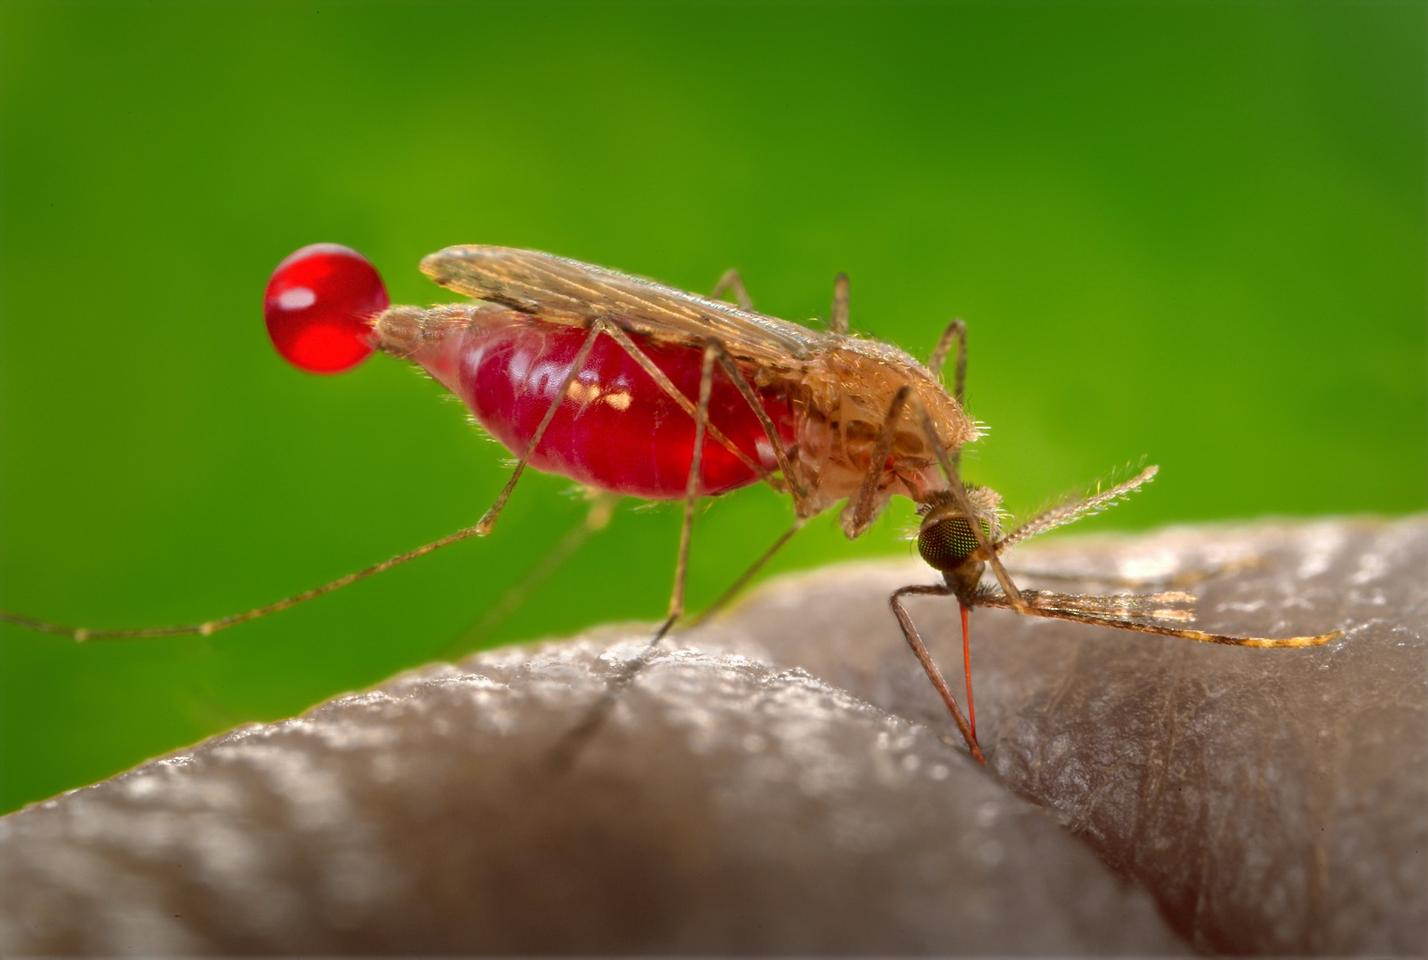 A female Anopheles gambiae mosquito, fuelling up